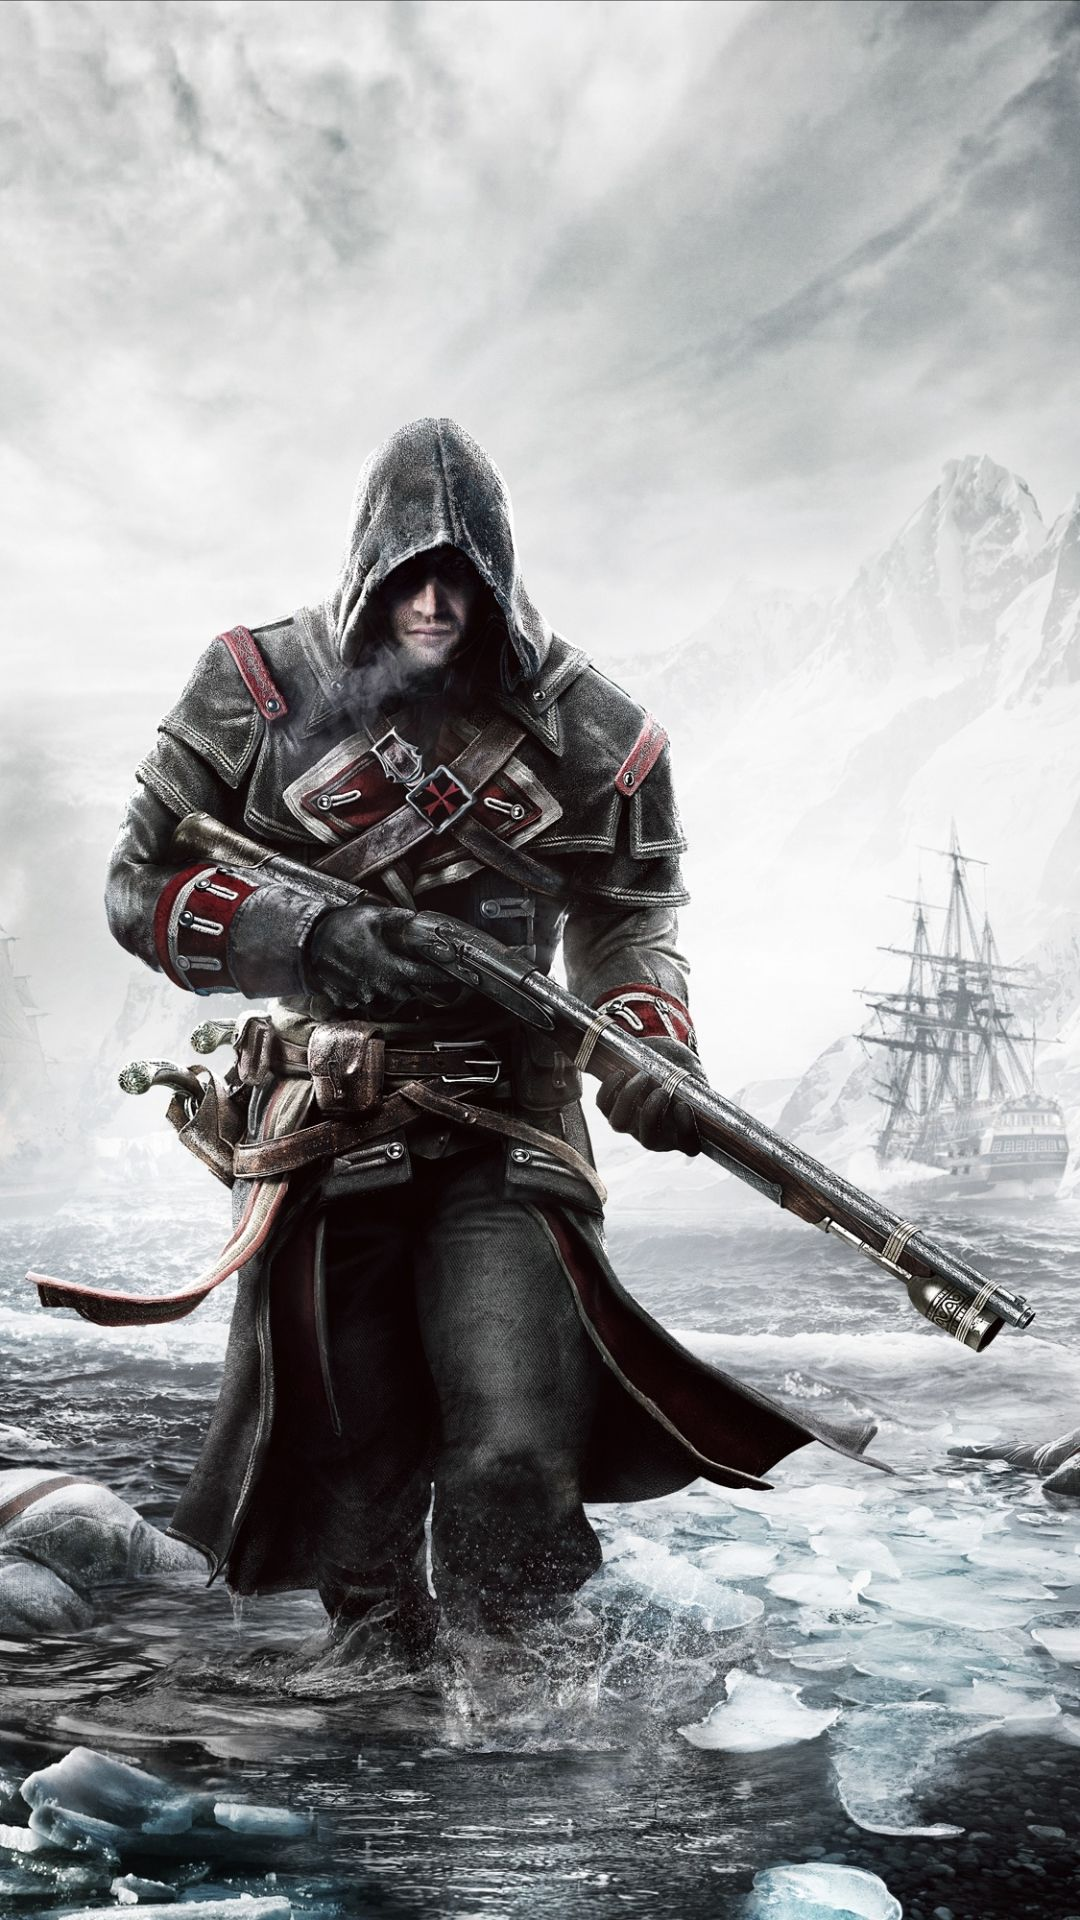 Hd Wallpaper 116 Assassin Creed 1 Pinterest Assassins Creed